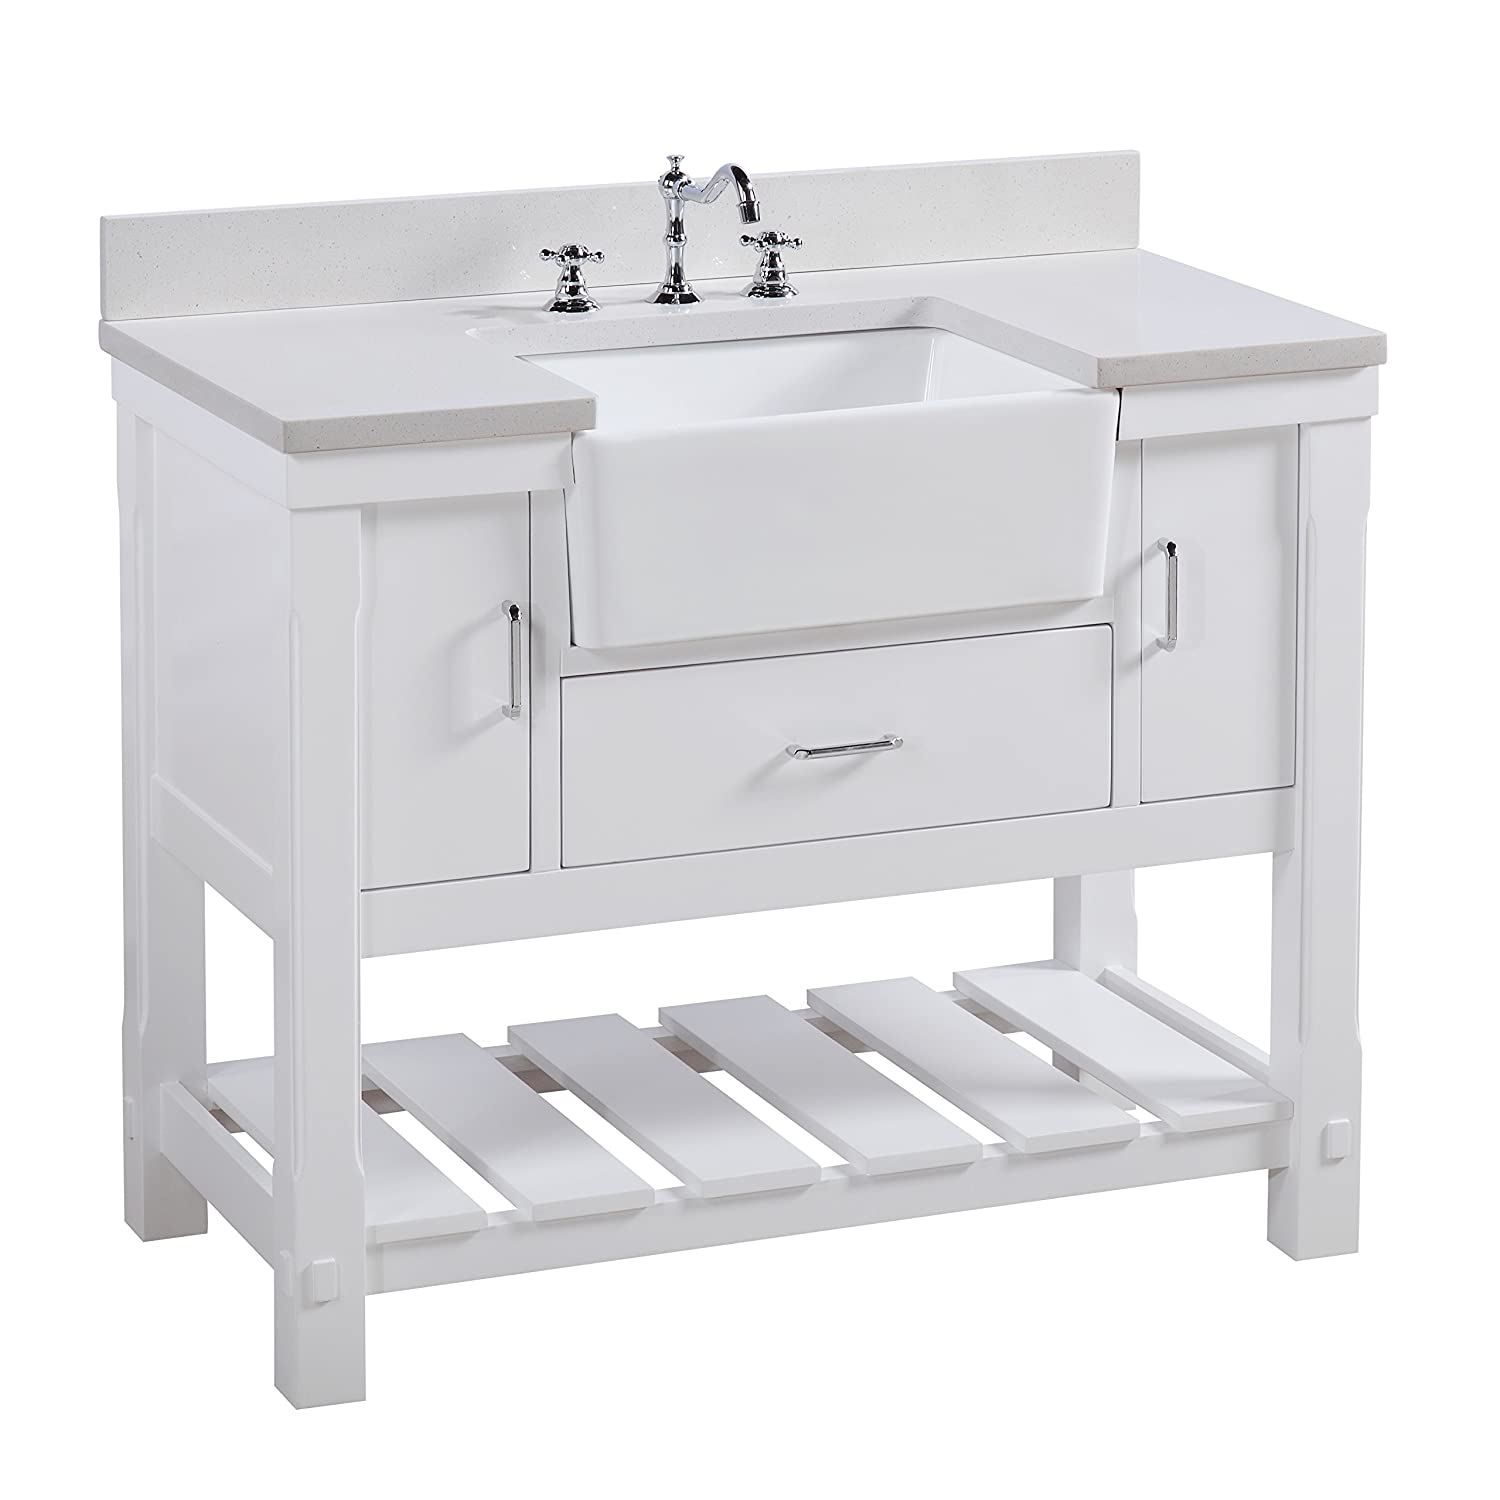 Free Delivery Charlotte 42 Inch Bathroom Vanity Quartz White Includes A White Quartz Countertop White Cabinet With Soft Close Drawers And White Ceramic Farmhouse Apron Sink Brand On Sale Clearance Www Training Rmutt Ac Th